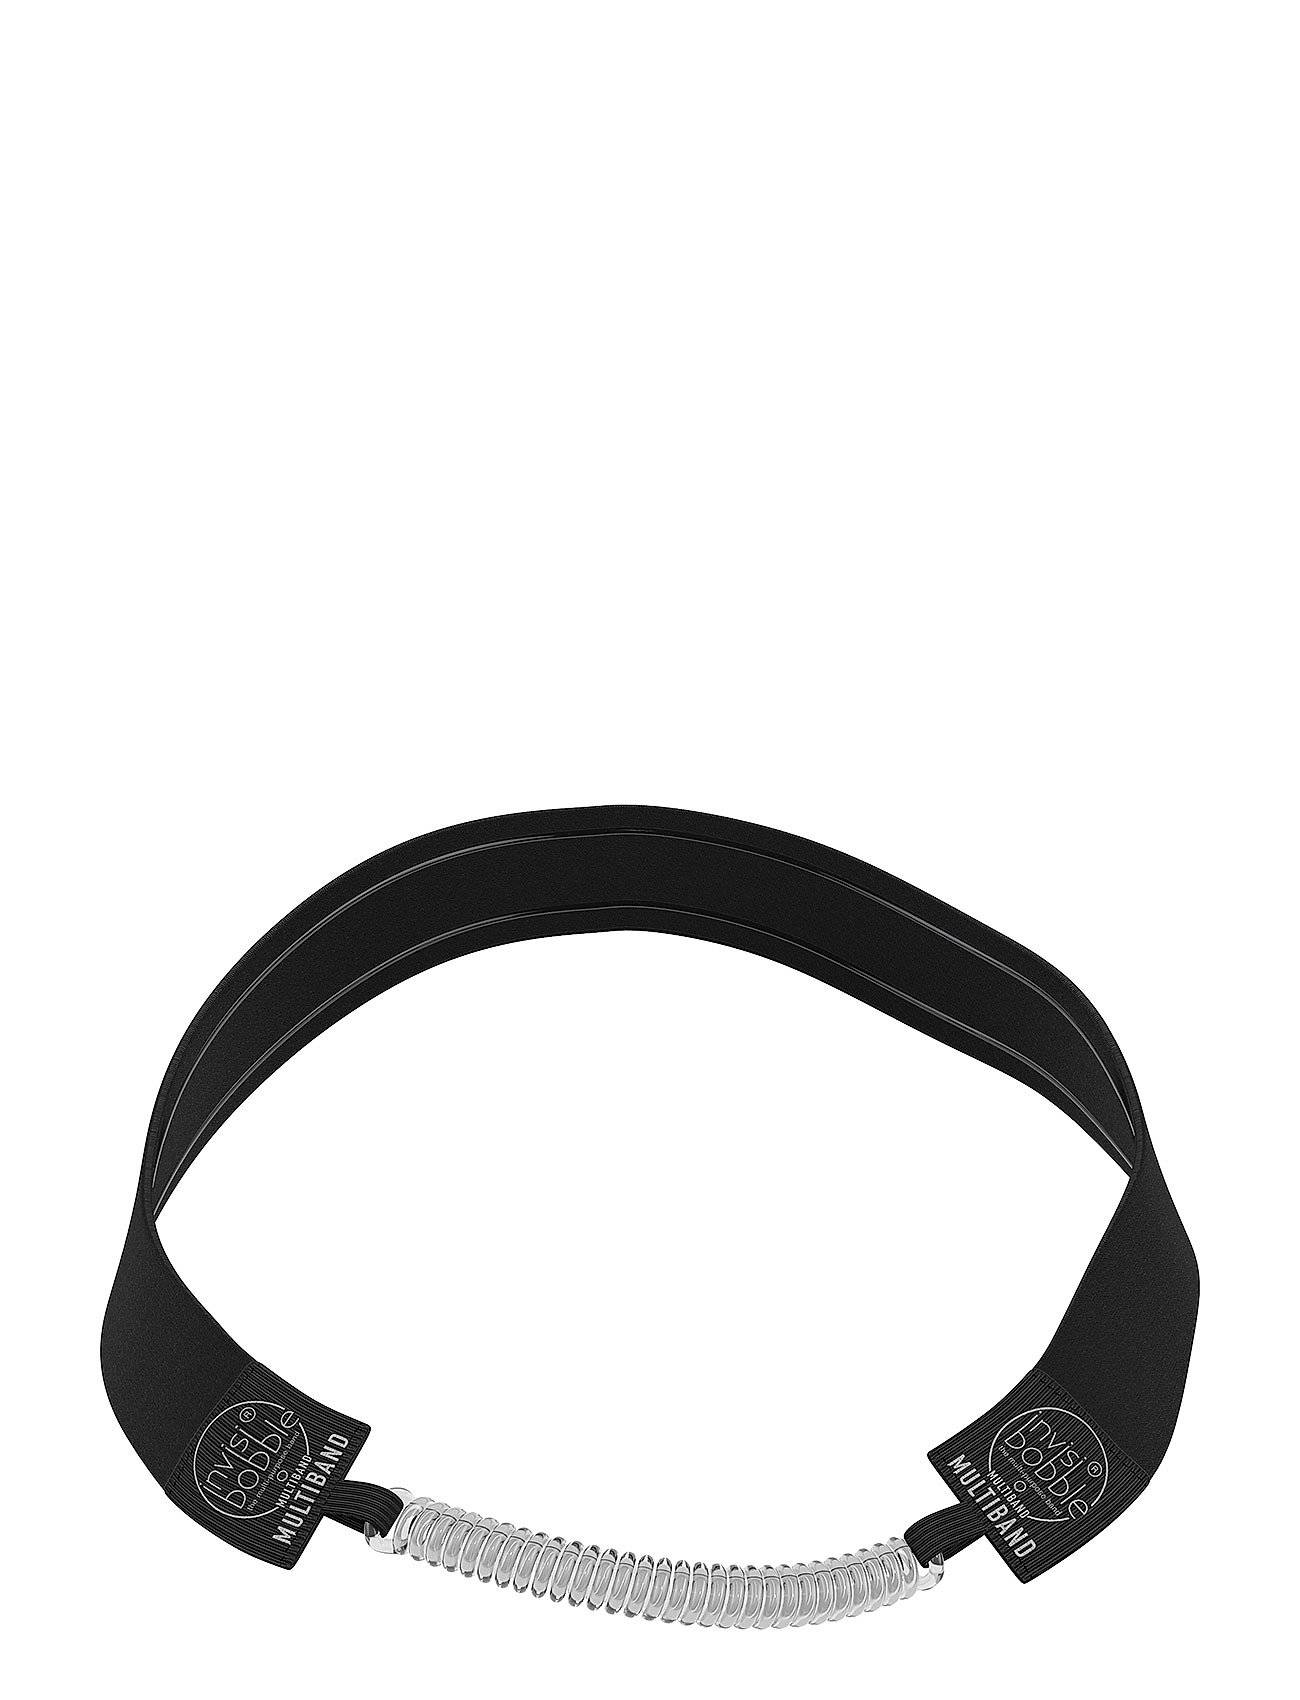 Image of Invisibobble Multiband True Black Beauty WOMEN Hair Accessories Hair Accessories Nude Invisibobble